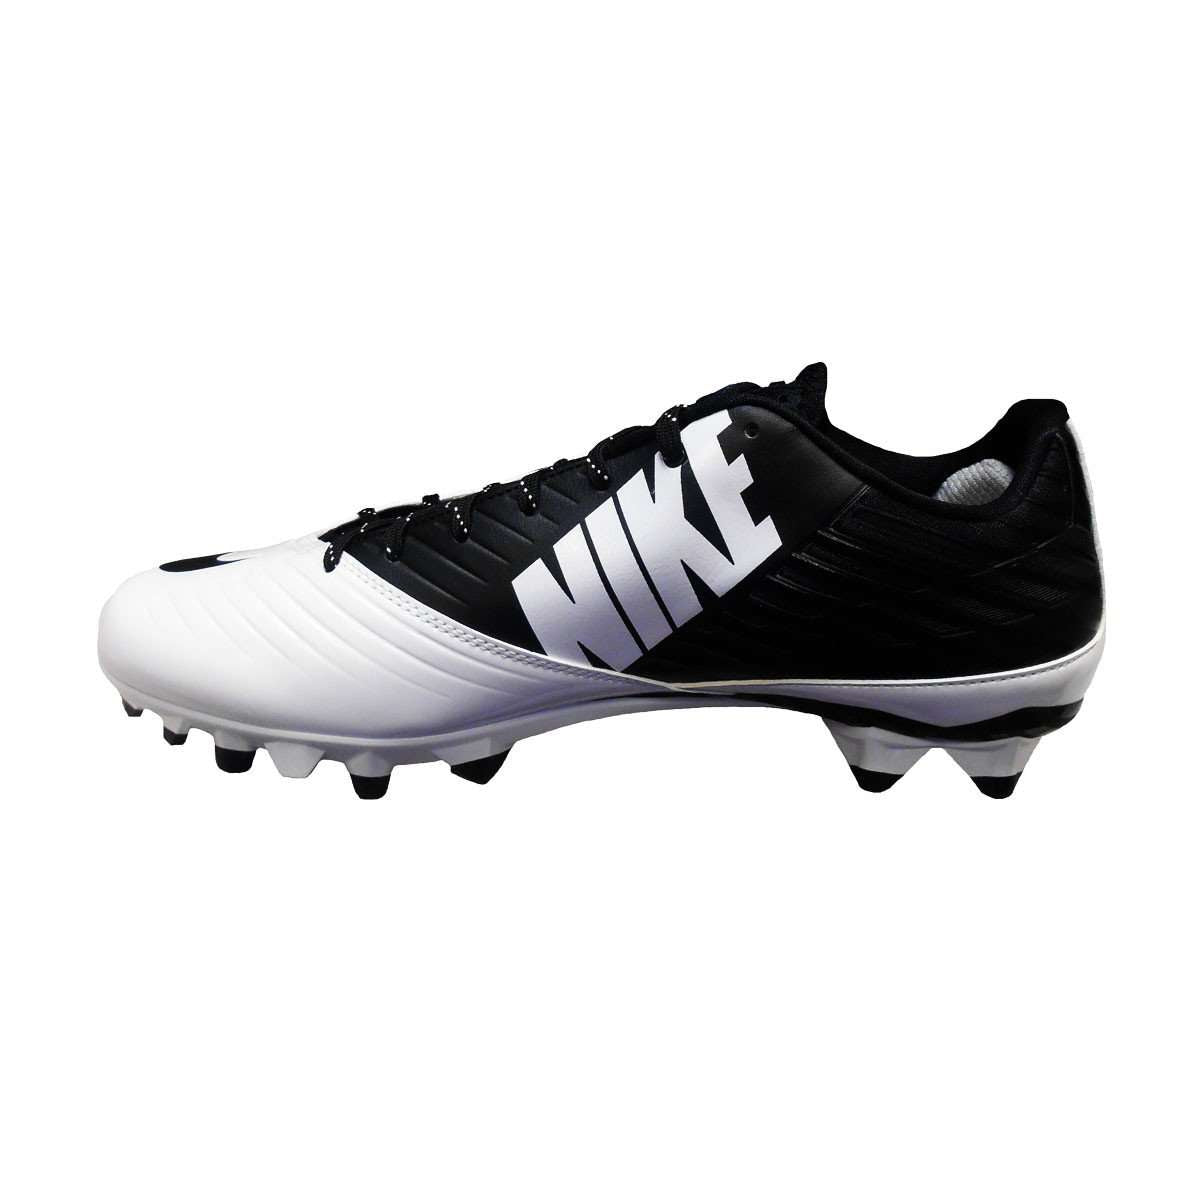 premium selection 47cca aca86 ... Nike Vapor Speed Low TD Football Cleats - League Outfitters ...